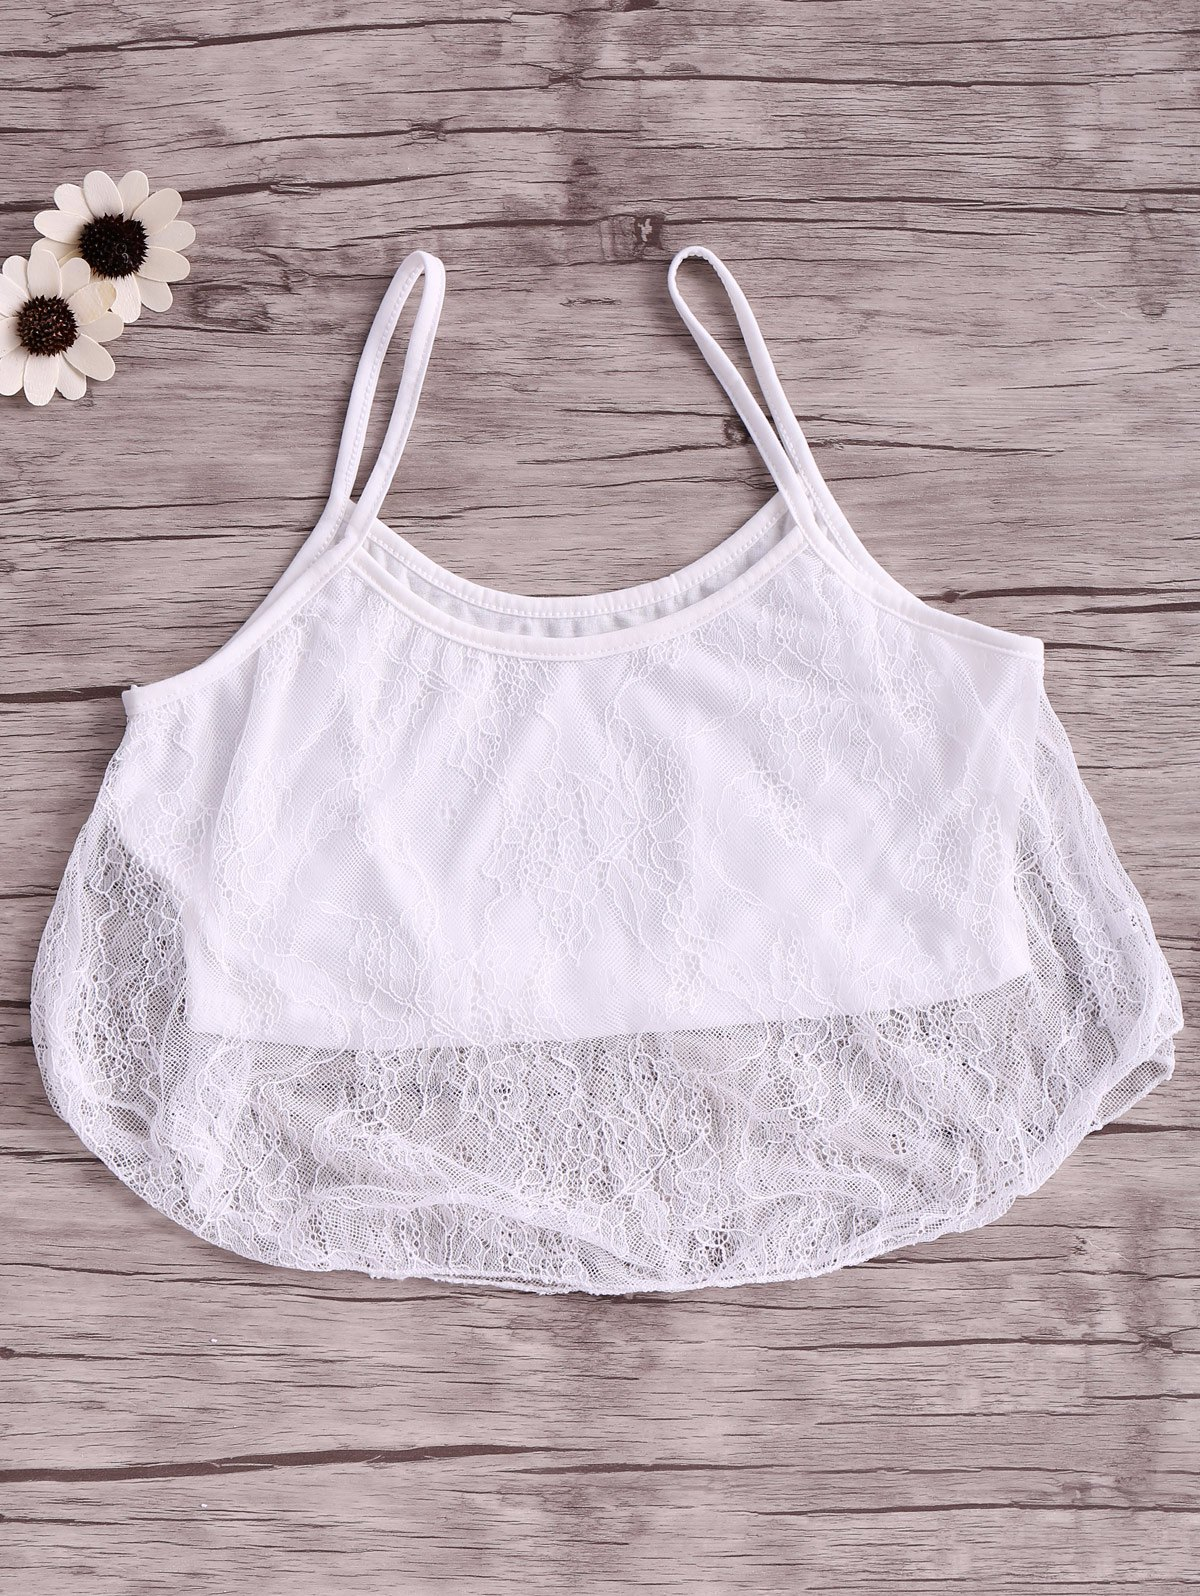 Cami Sleeveless White Lace Splicing Crop Top